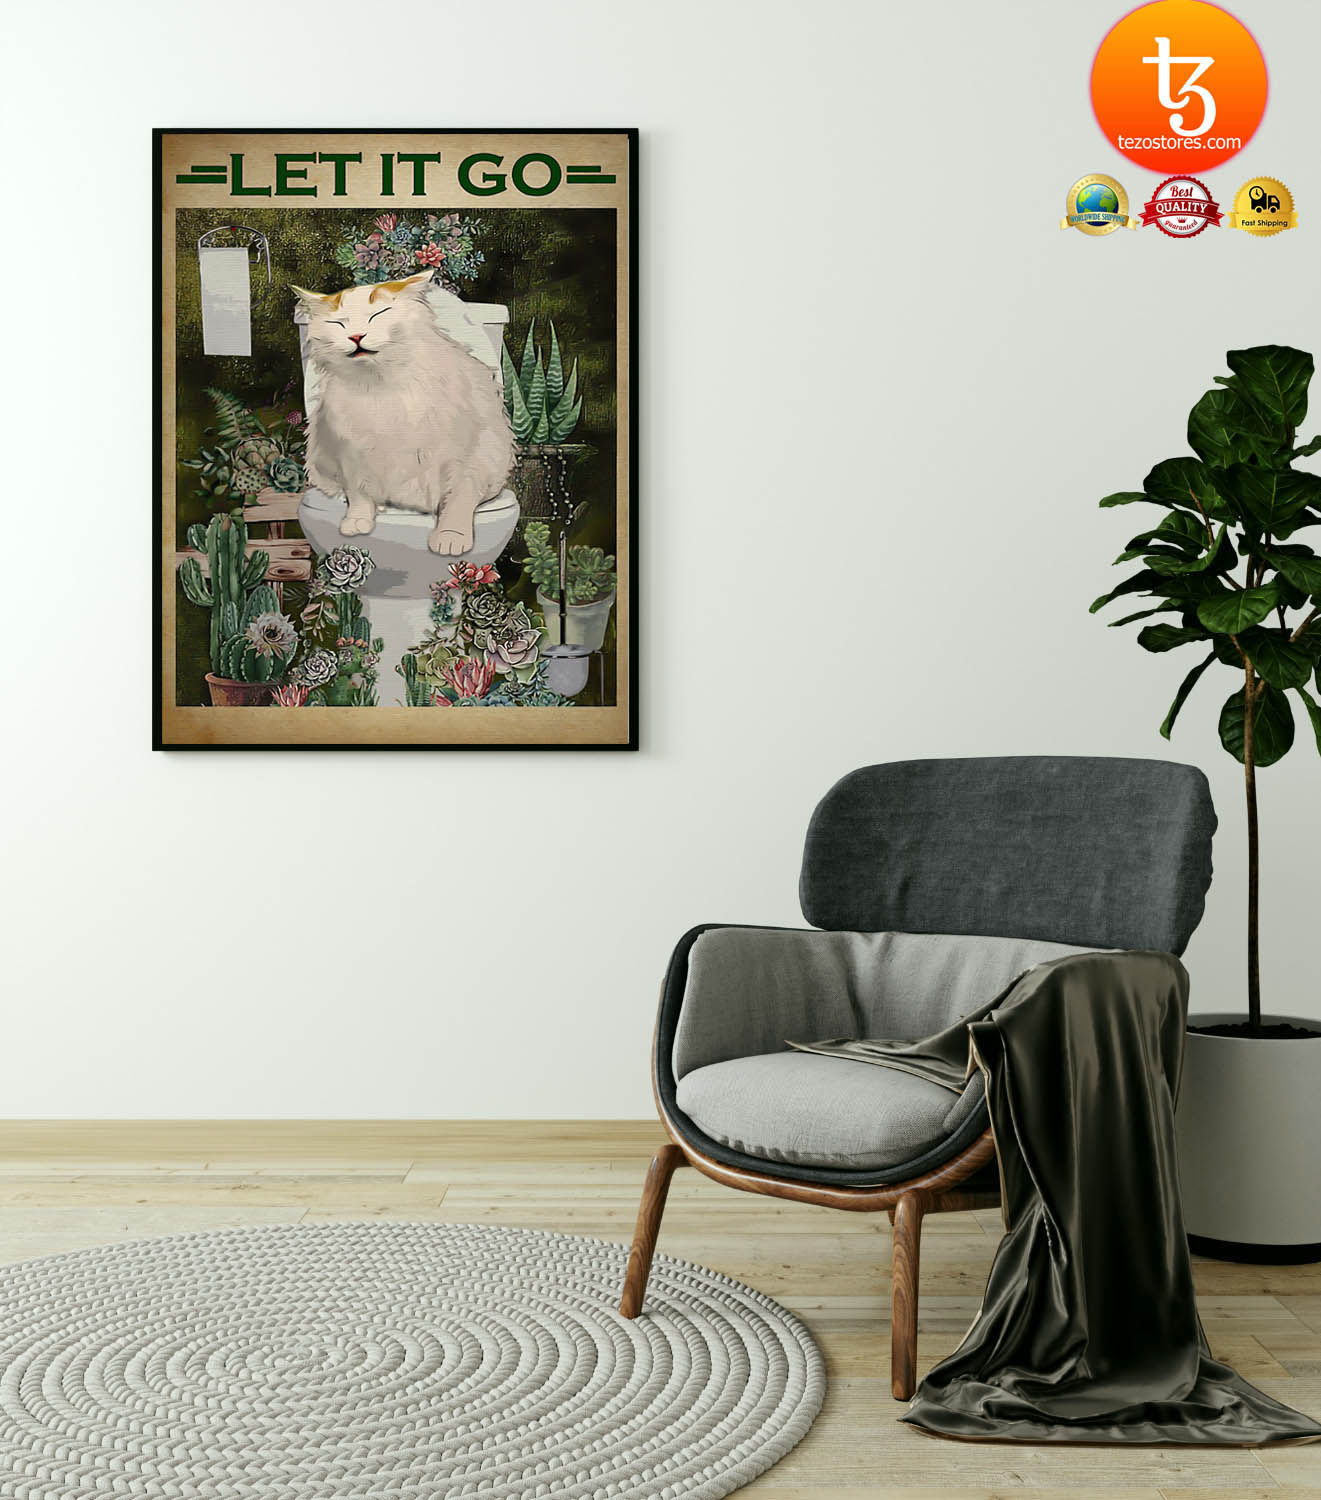 Cat and cactus let it go poster 23